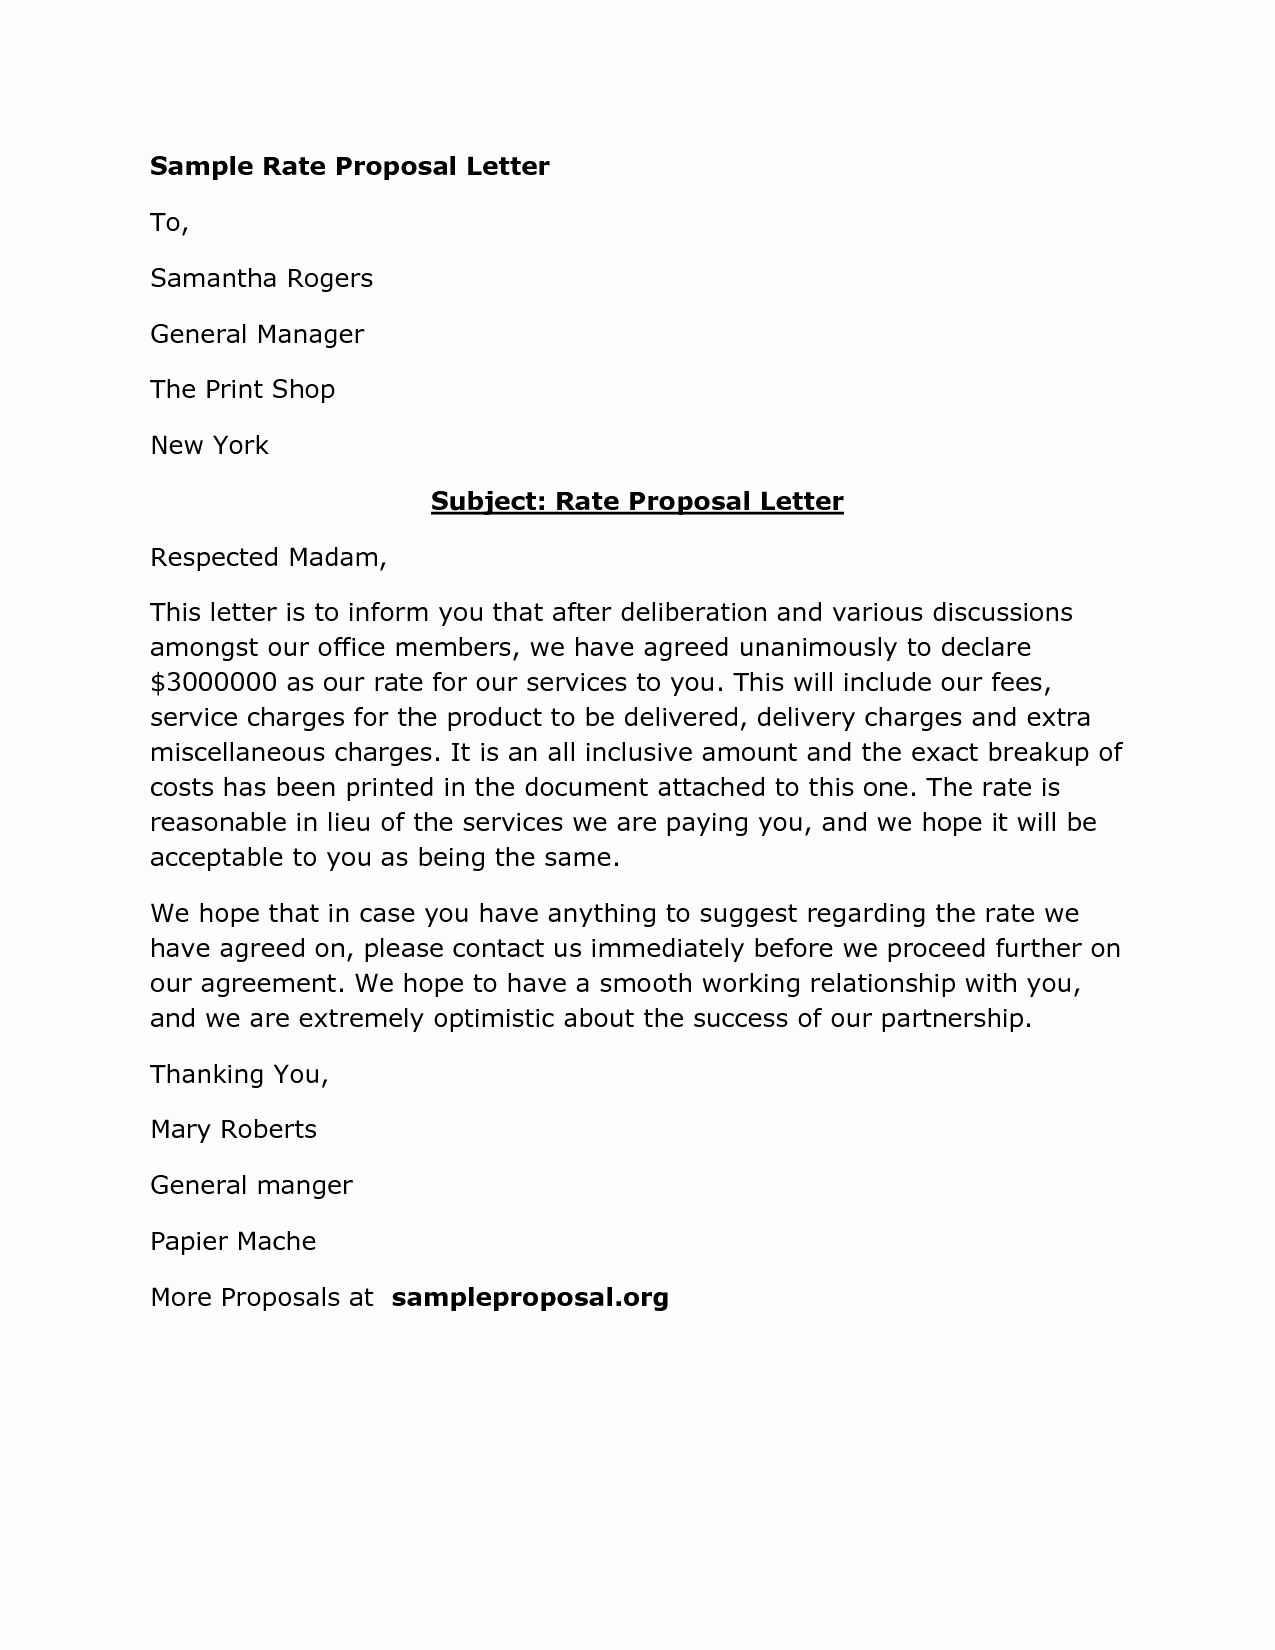 Sample Letter Of Collaboration Proposal Awesome Download Rate Proposal Letter Sample Proposals by